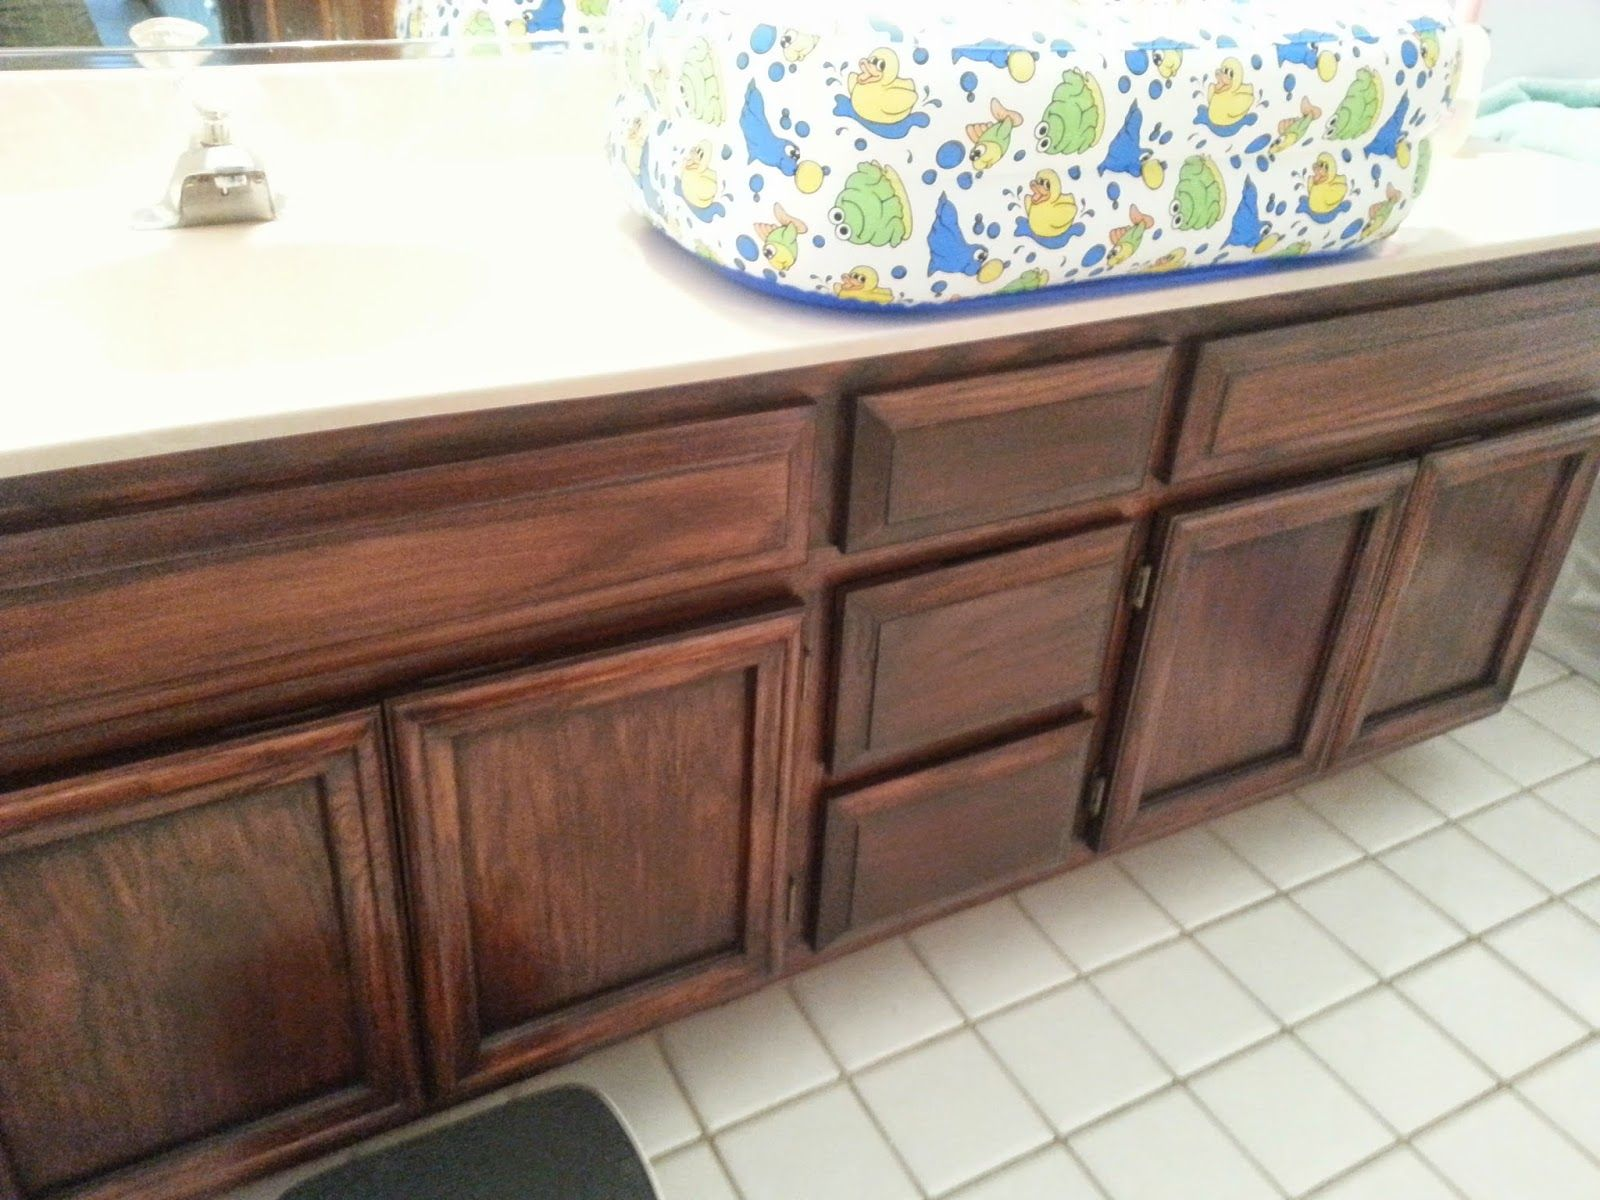 General Finishes Brown Mahogany Gel Stain On Bathroom Cabinets By Give It A  Go Mama